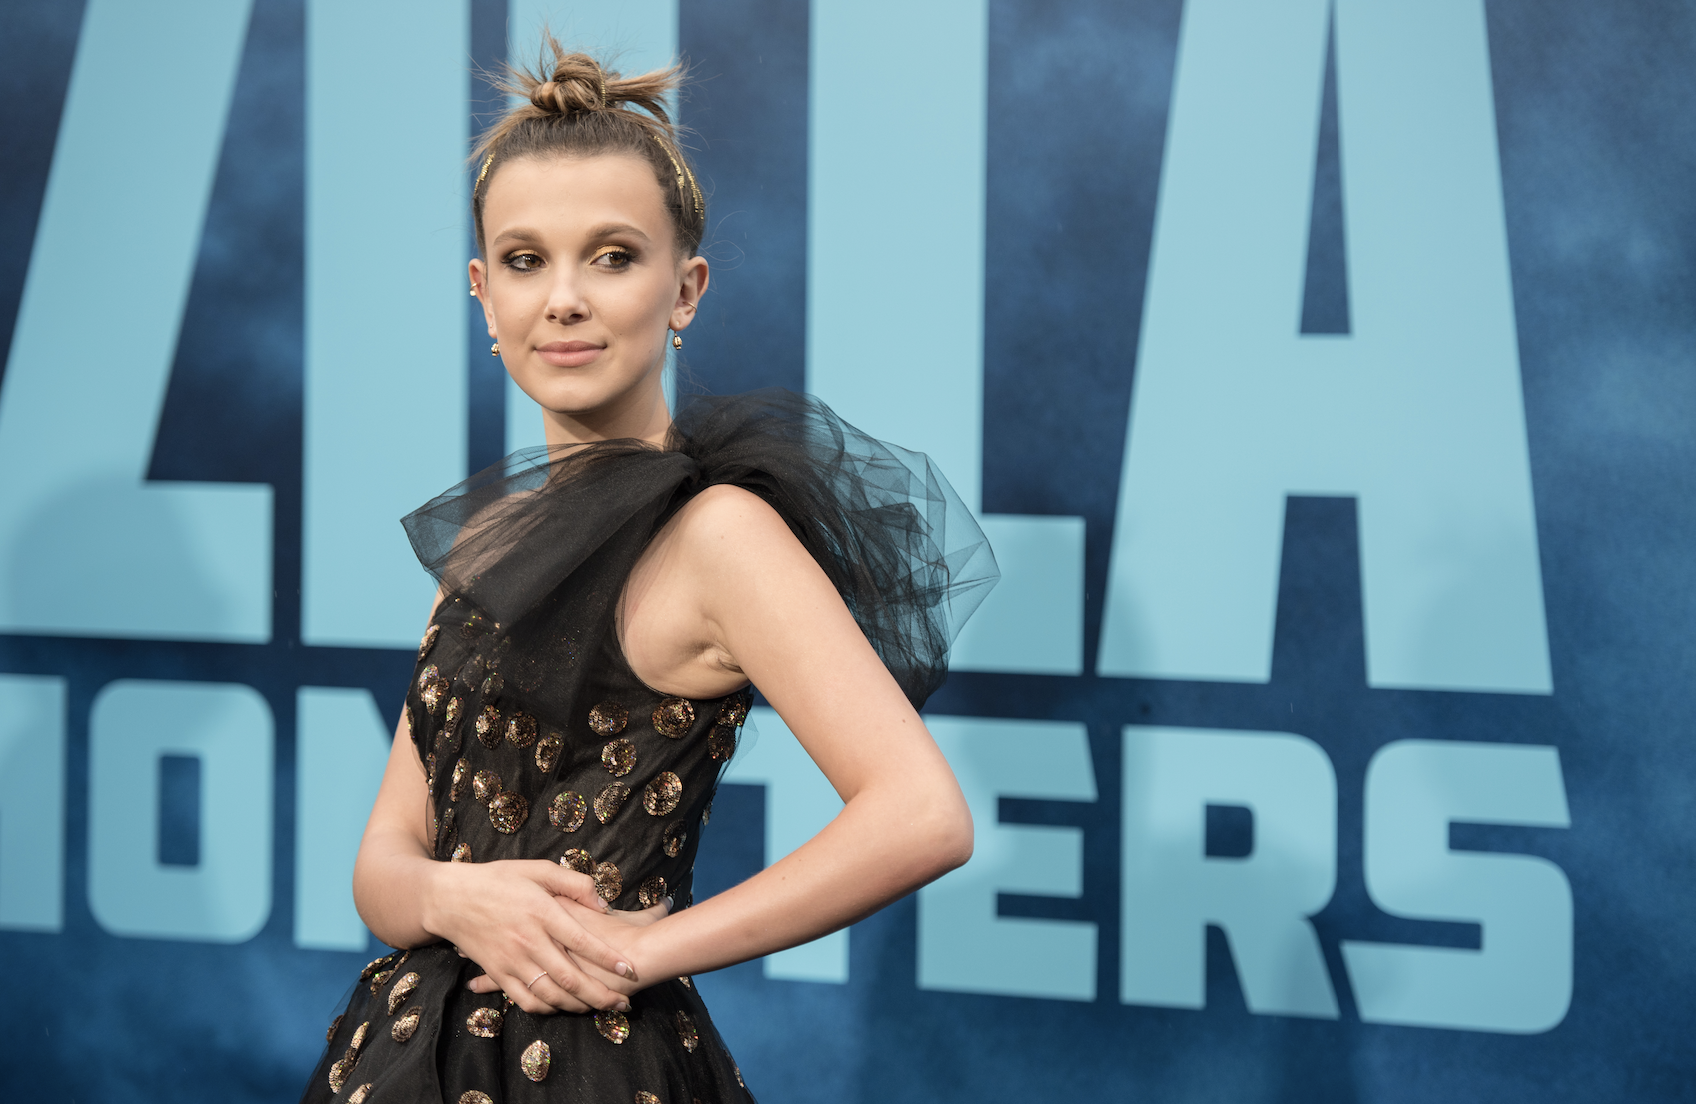 Stranger Things star Millie Bobby Brown apologises after miming in skincare regime video